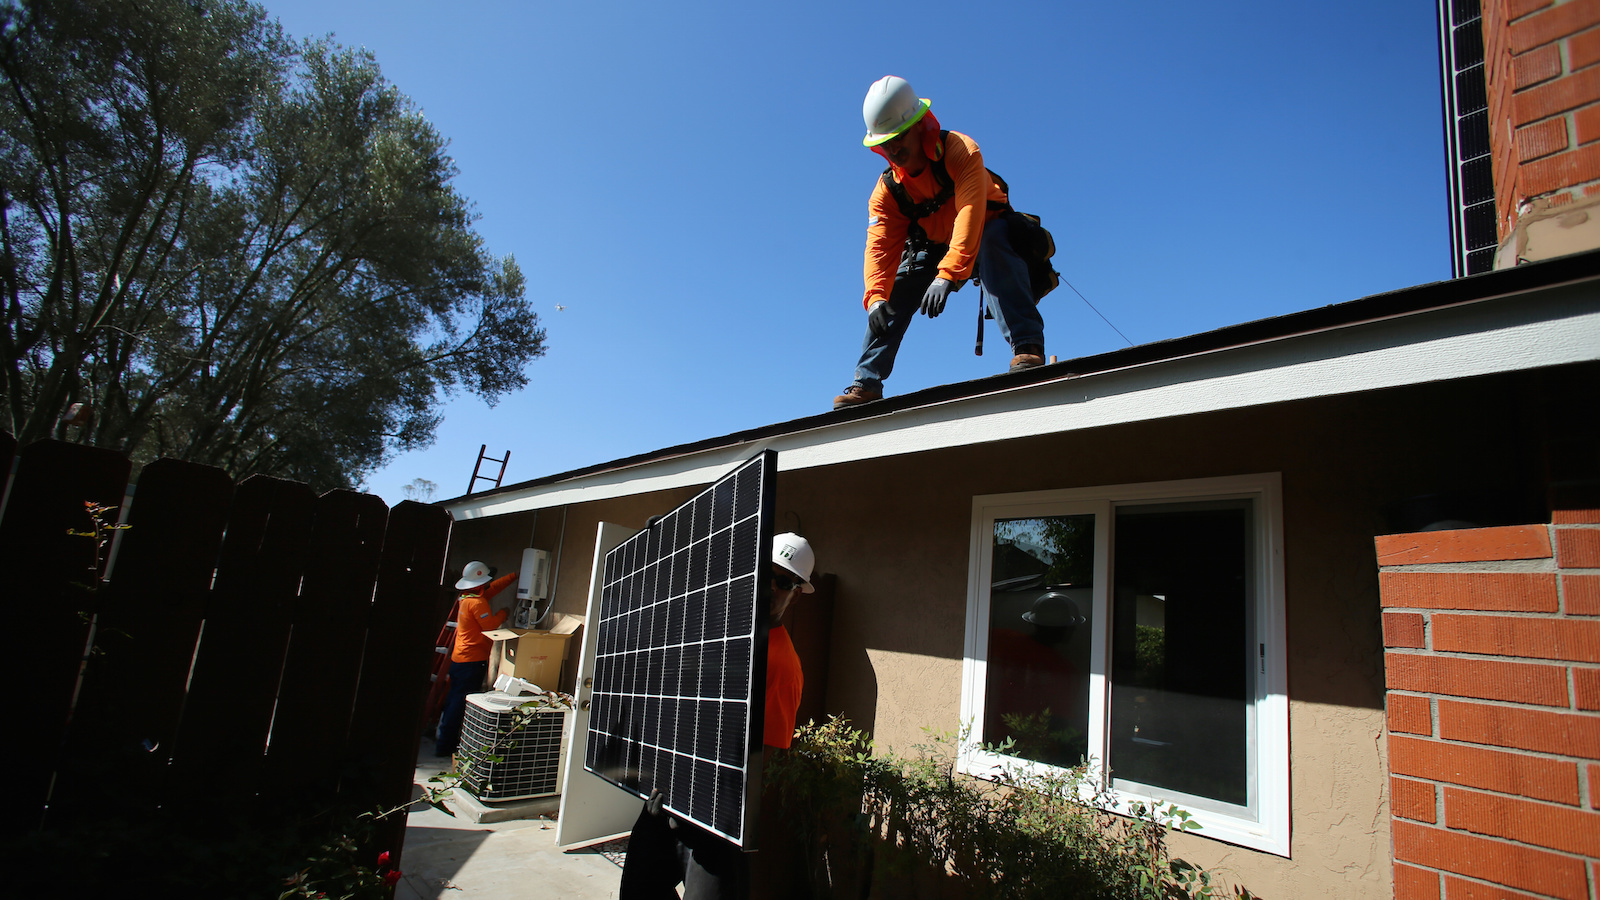 Workers lift a solar panel onto a roof during a residential solar installation in Scripps Ranch, San Diego, California, U.S. October 14, 2016. Picture taken October 14, 2016.       REUTERS/Mike Blake - RTX2QGX8